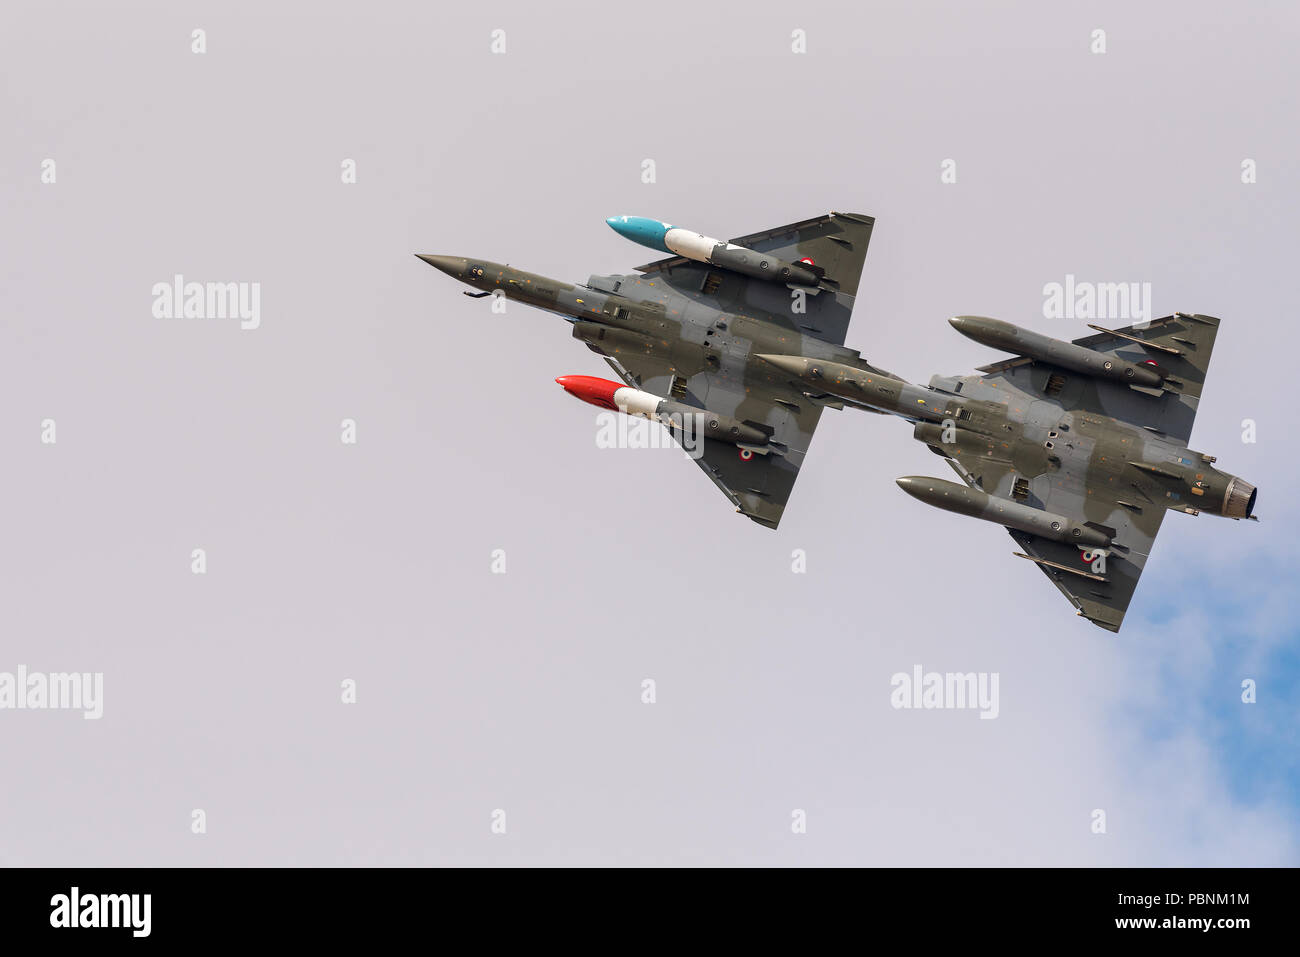 Two Dassault Mirage 2000D fighter jets from the French Air Force put